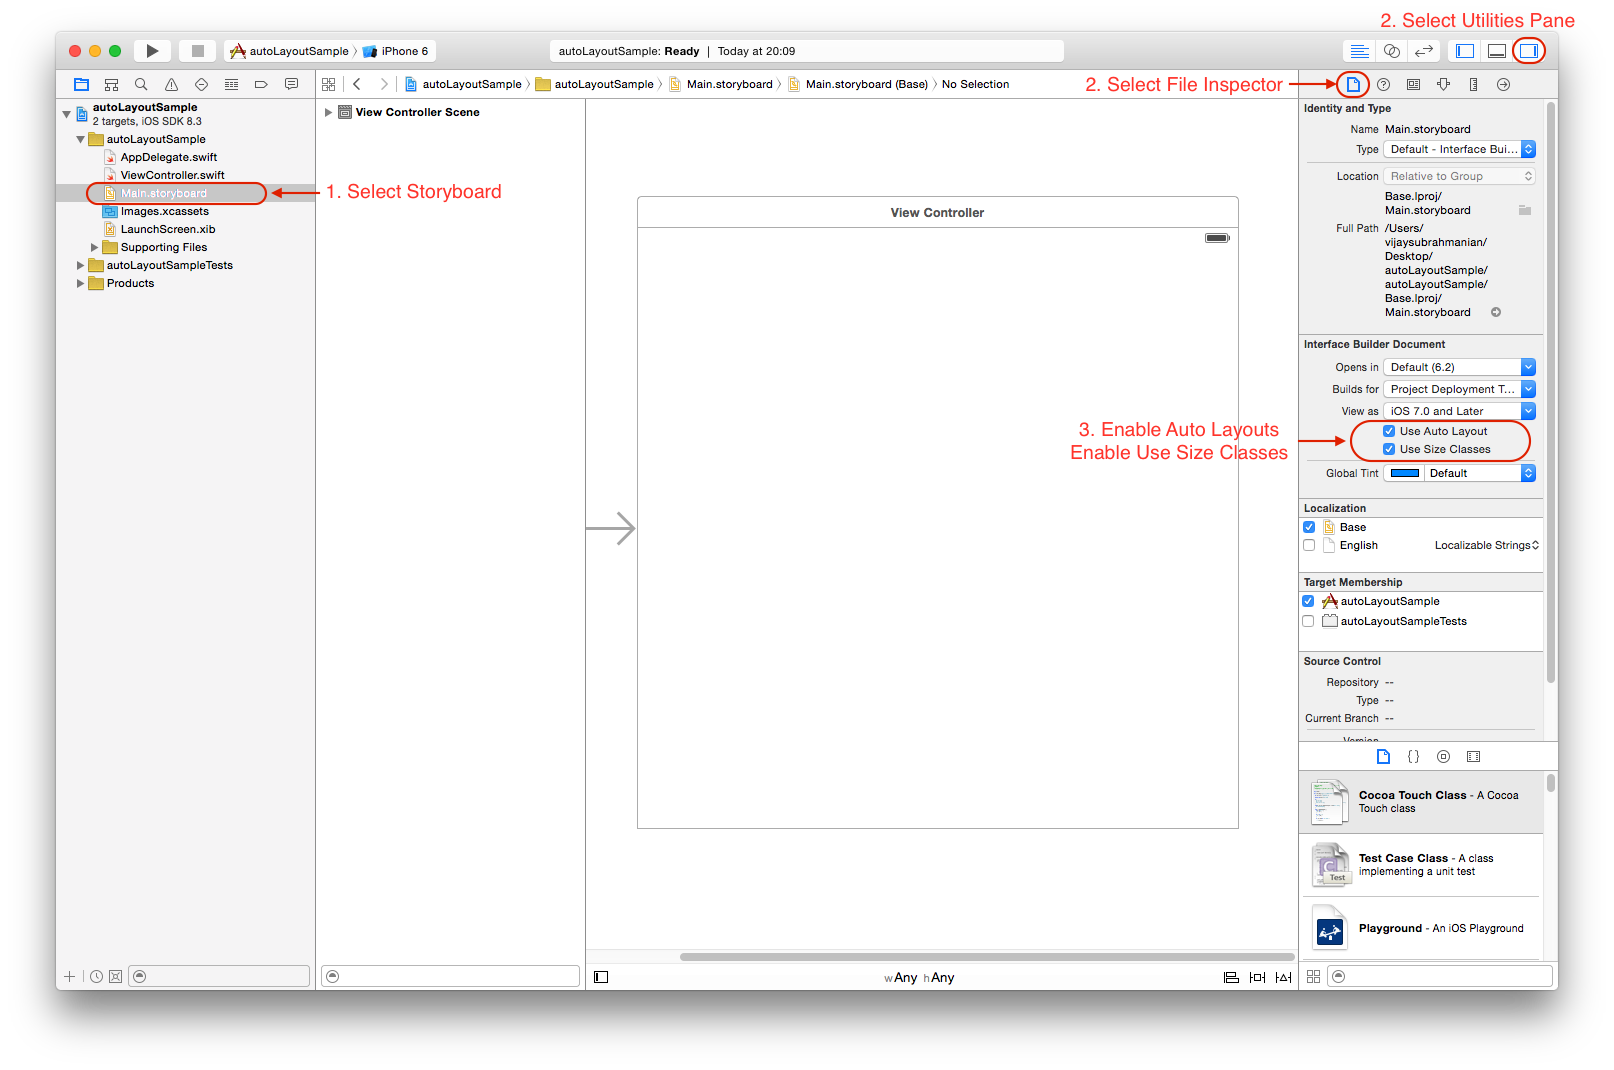 xcode interface builder